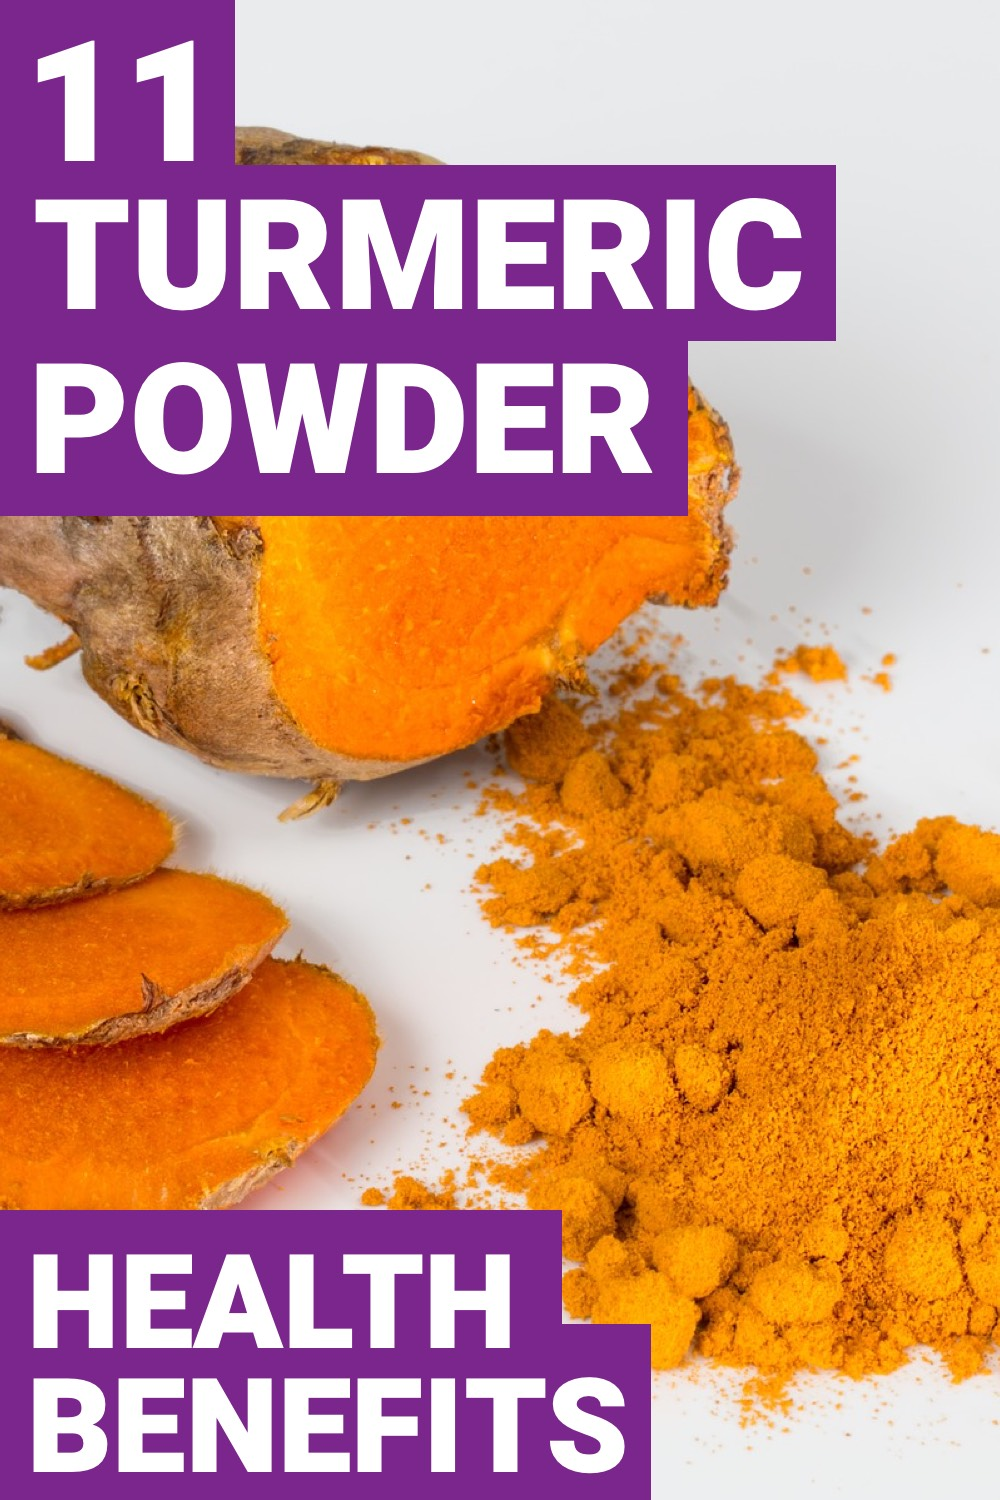 If you want a spice that's going to improve your health, use turmeric. Here are 11 turmeric benefits that you need.